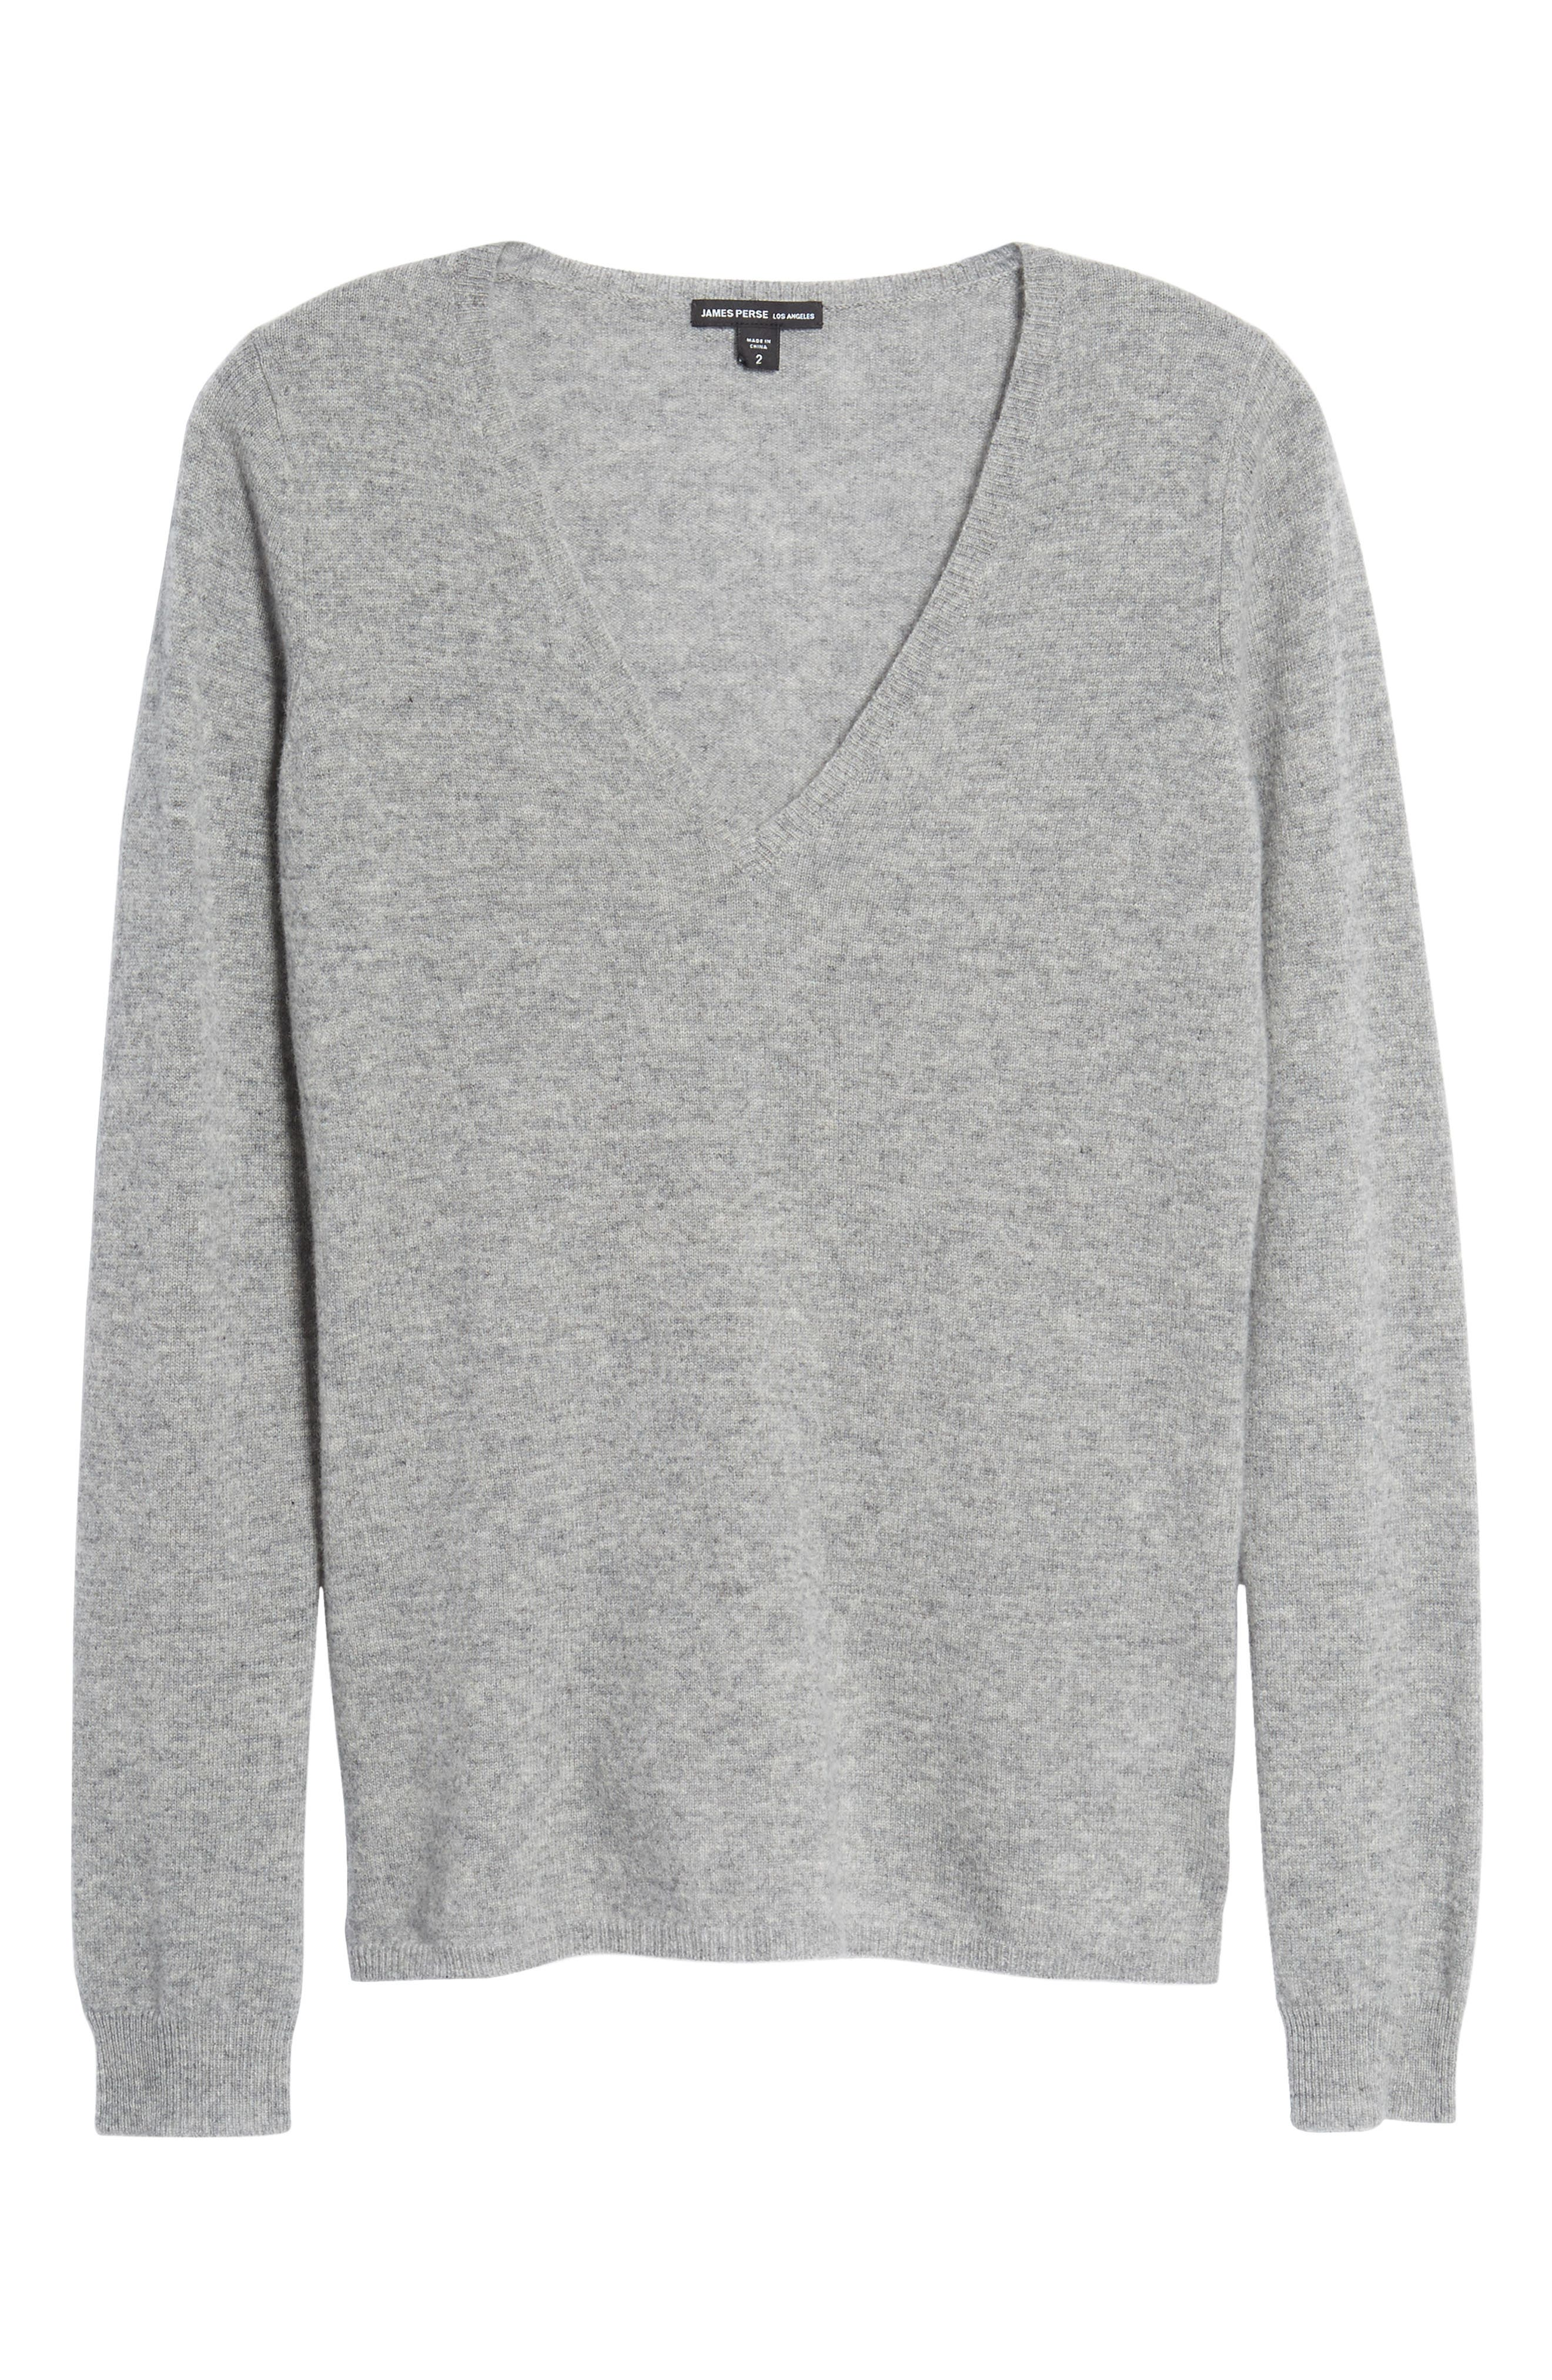 Cashmere V-Neck Sweater,                             Alternate thumbnail 6, color,                             086